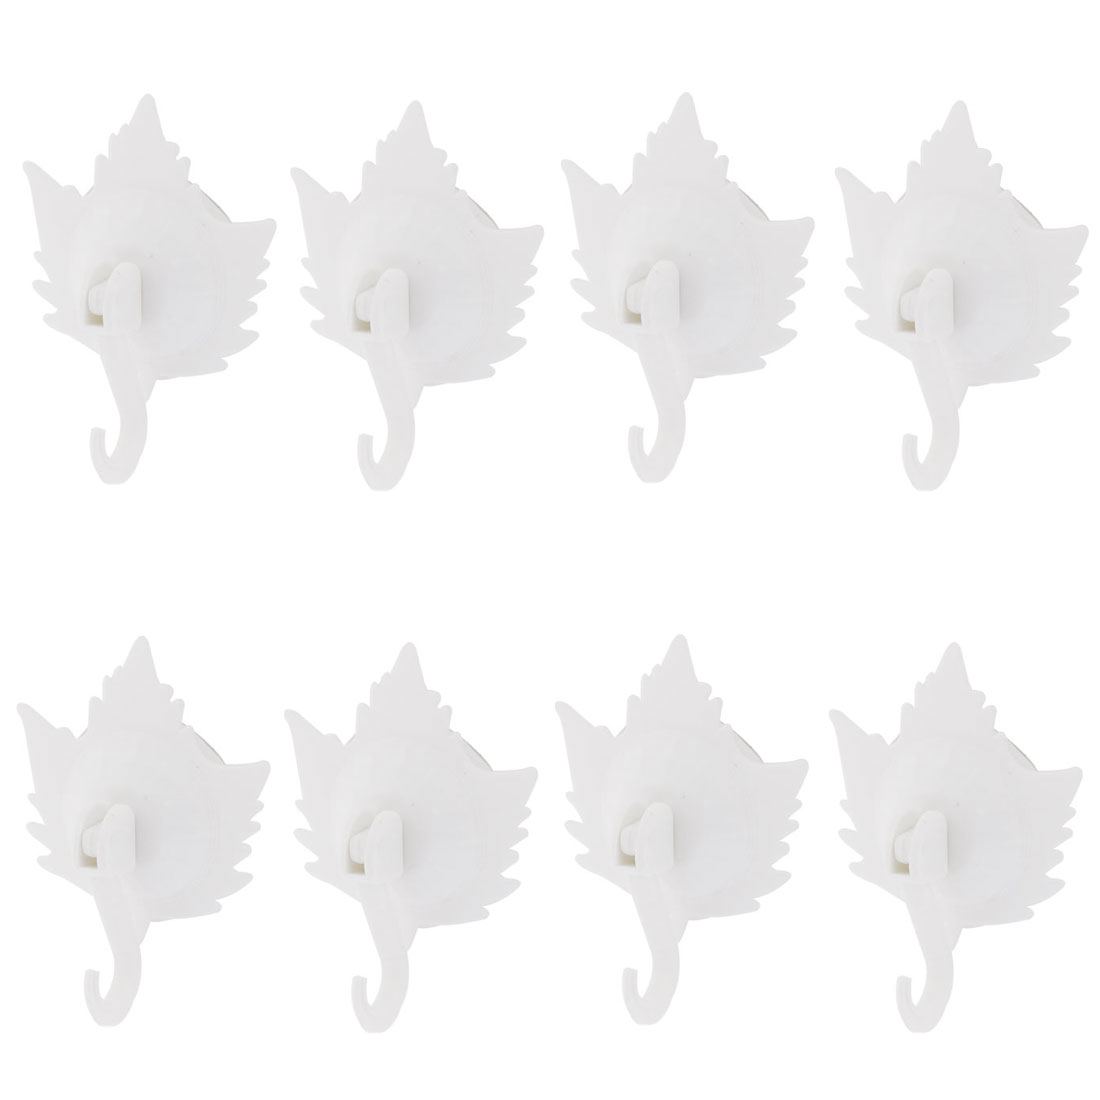 Home Clothes Maple Leaf Shaped Suction Cup Plastic Hooks Wall Hangers White 8pcs